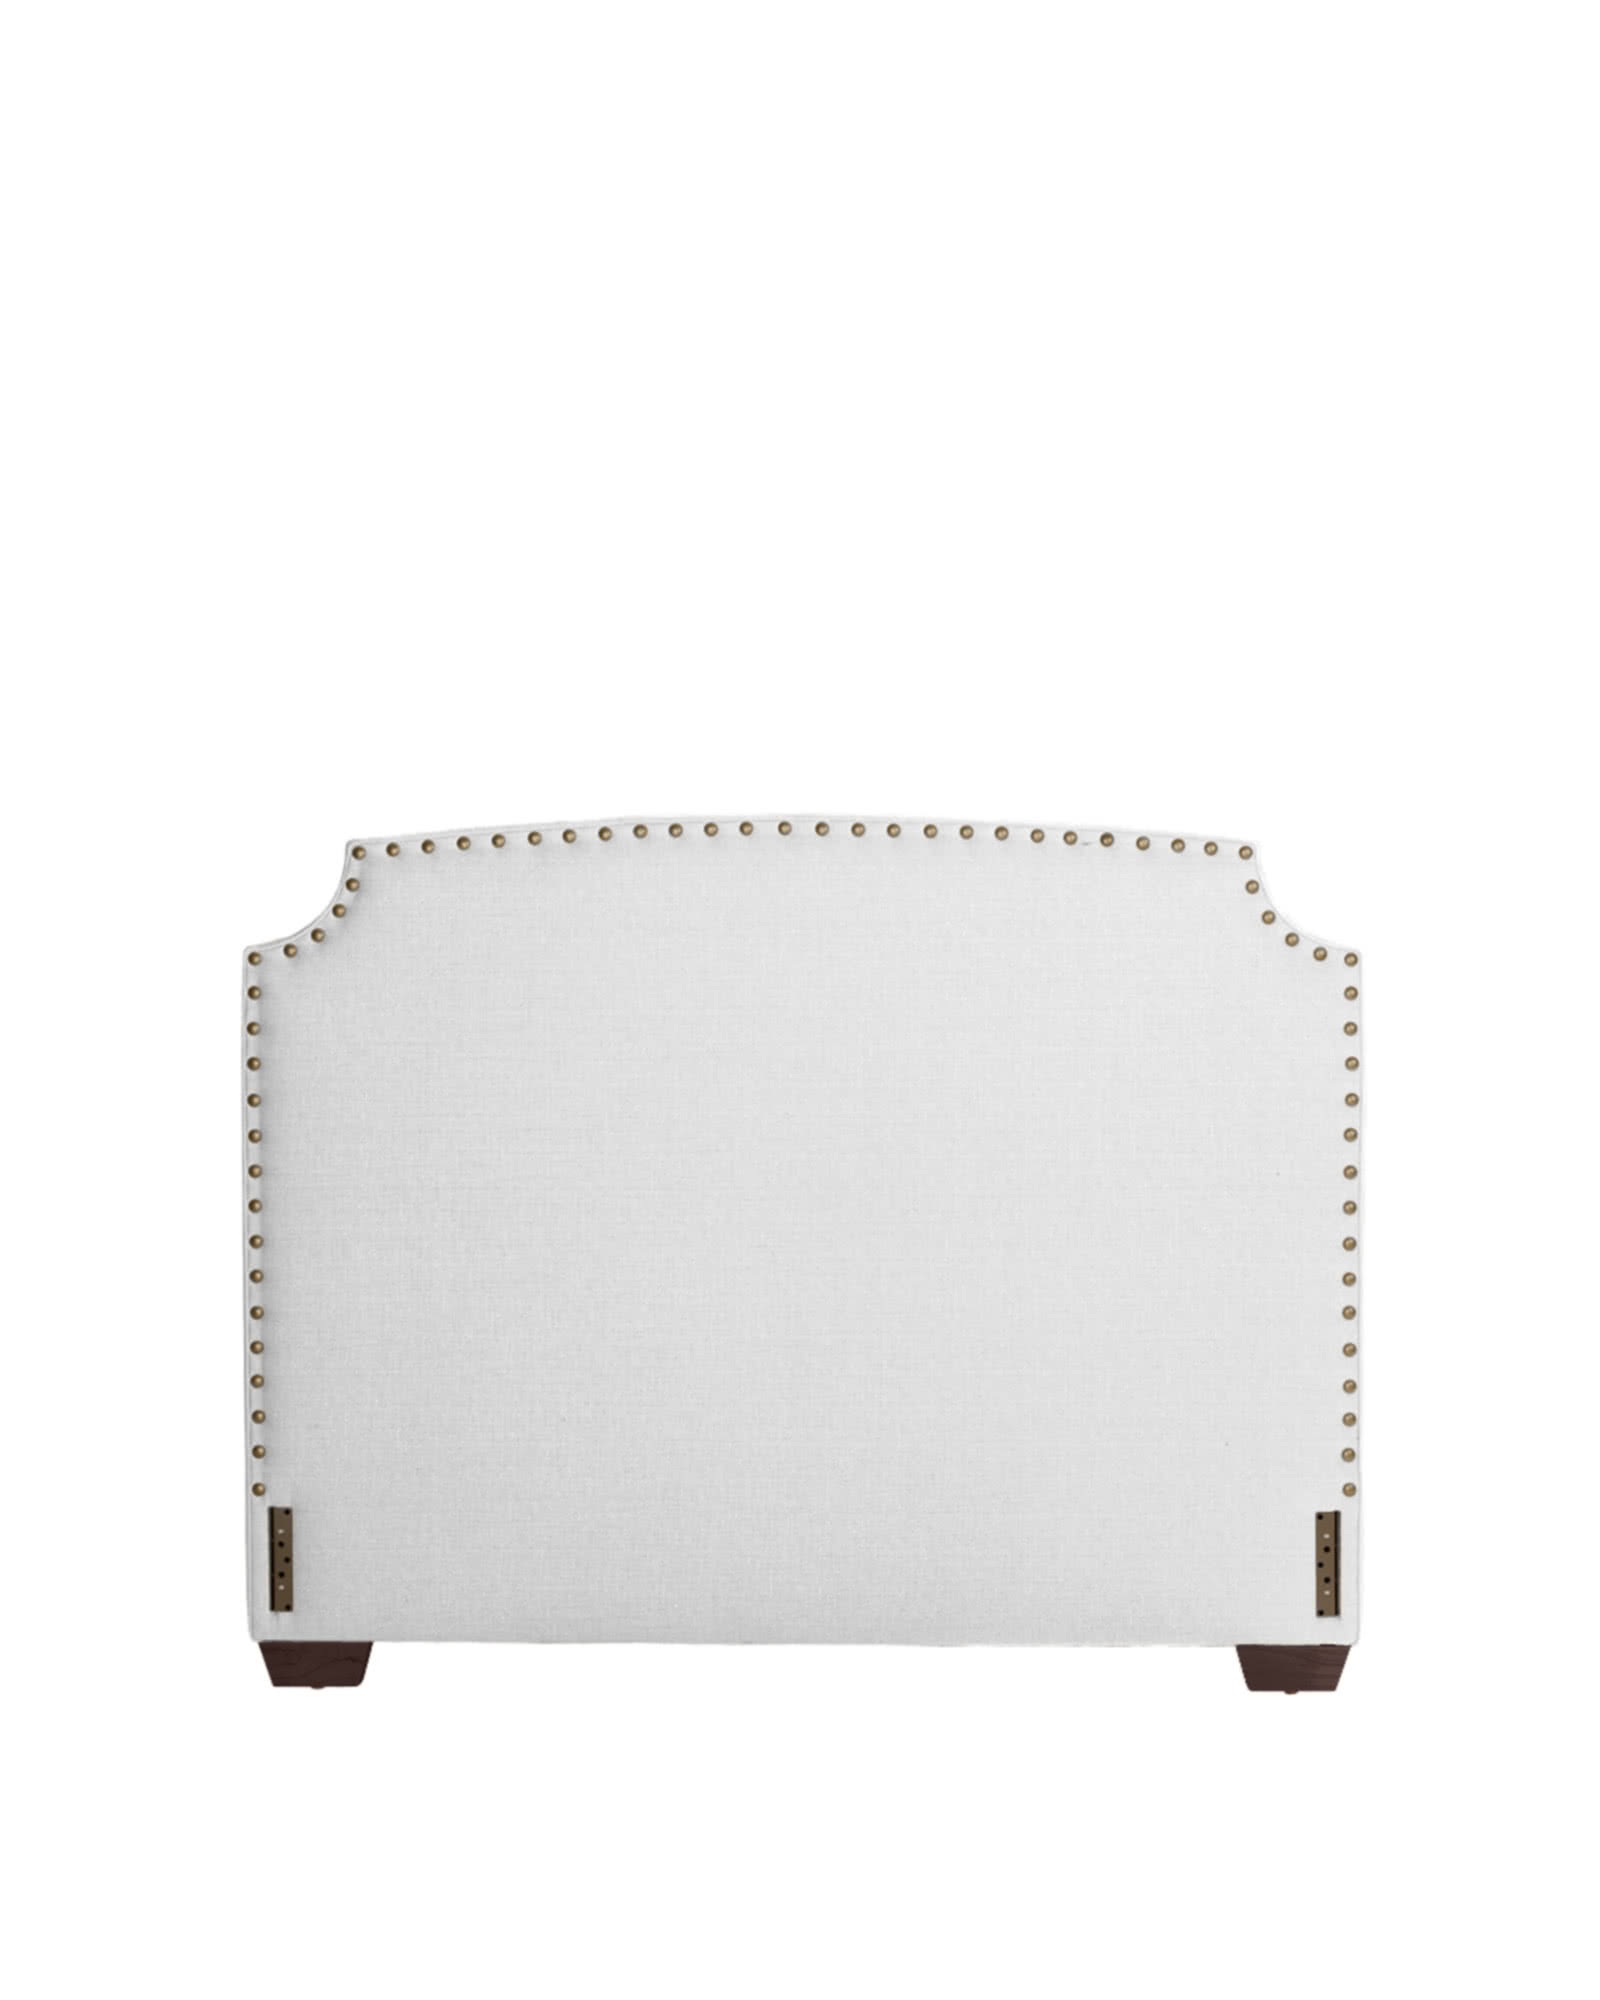 Fillmore Headboard with Nailheads